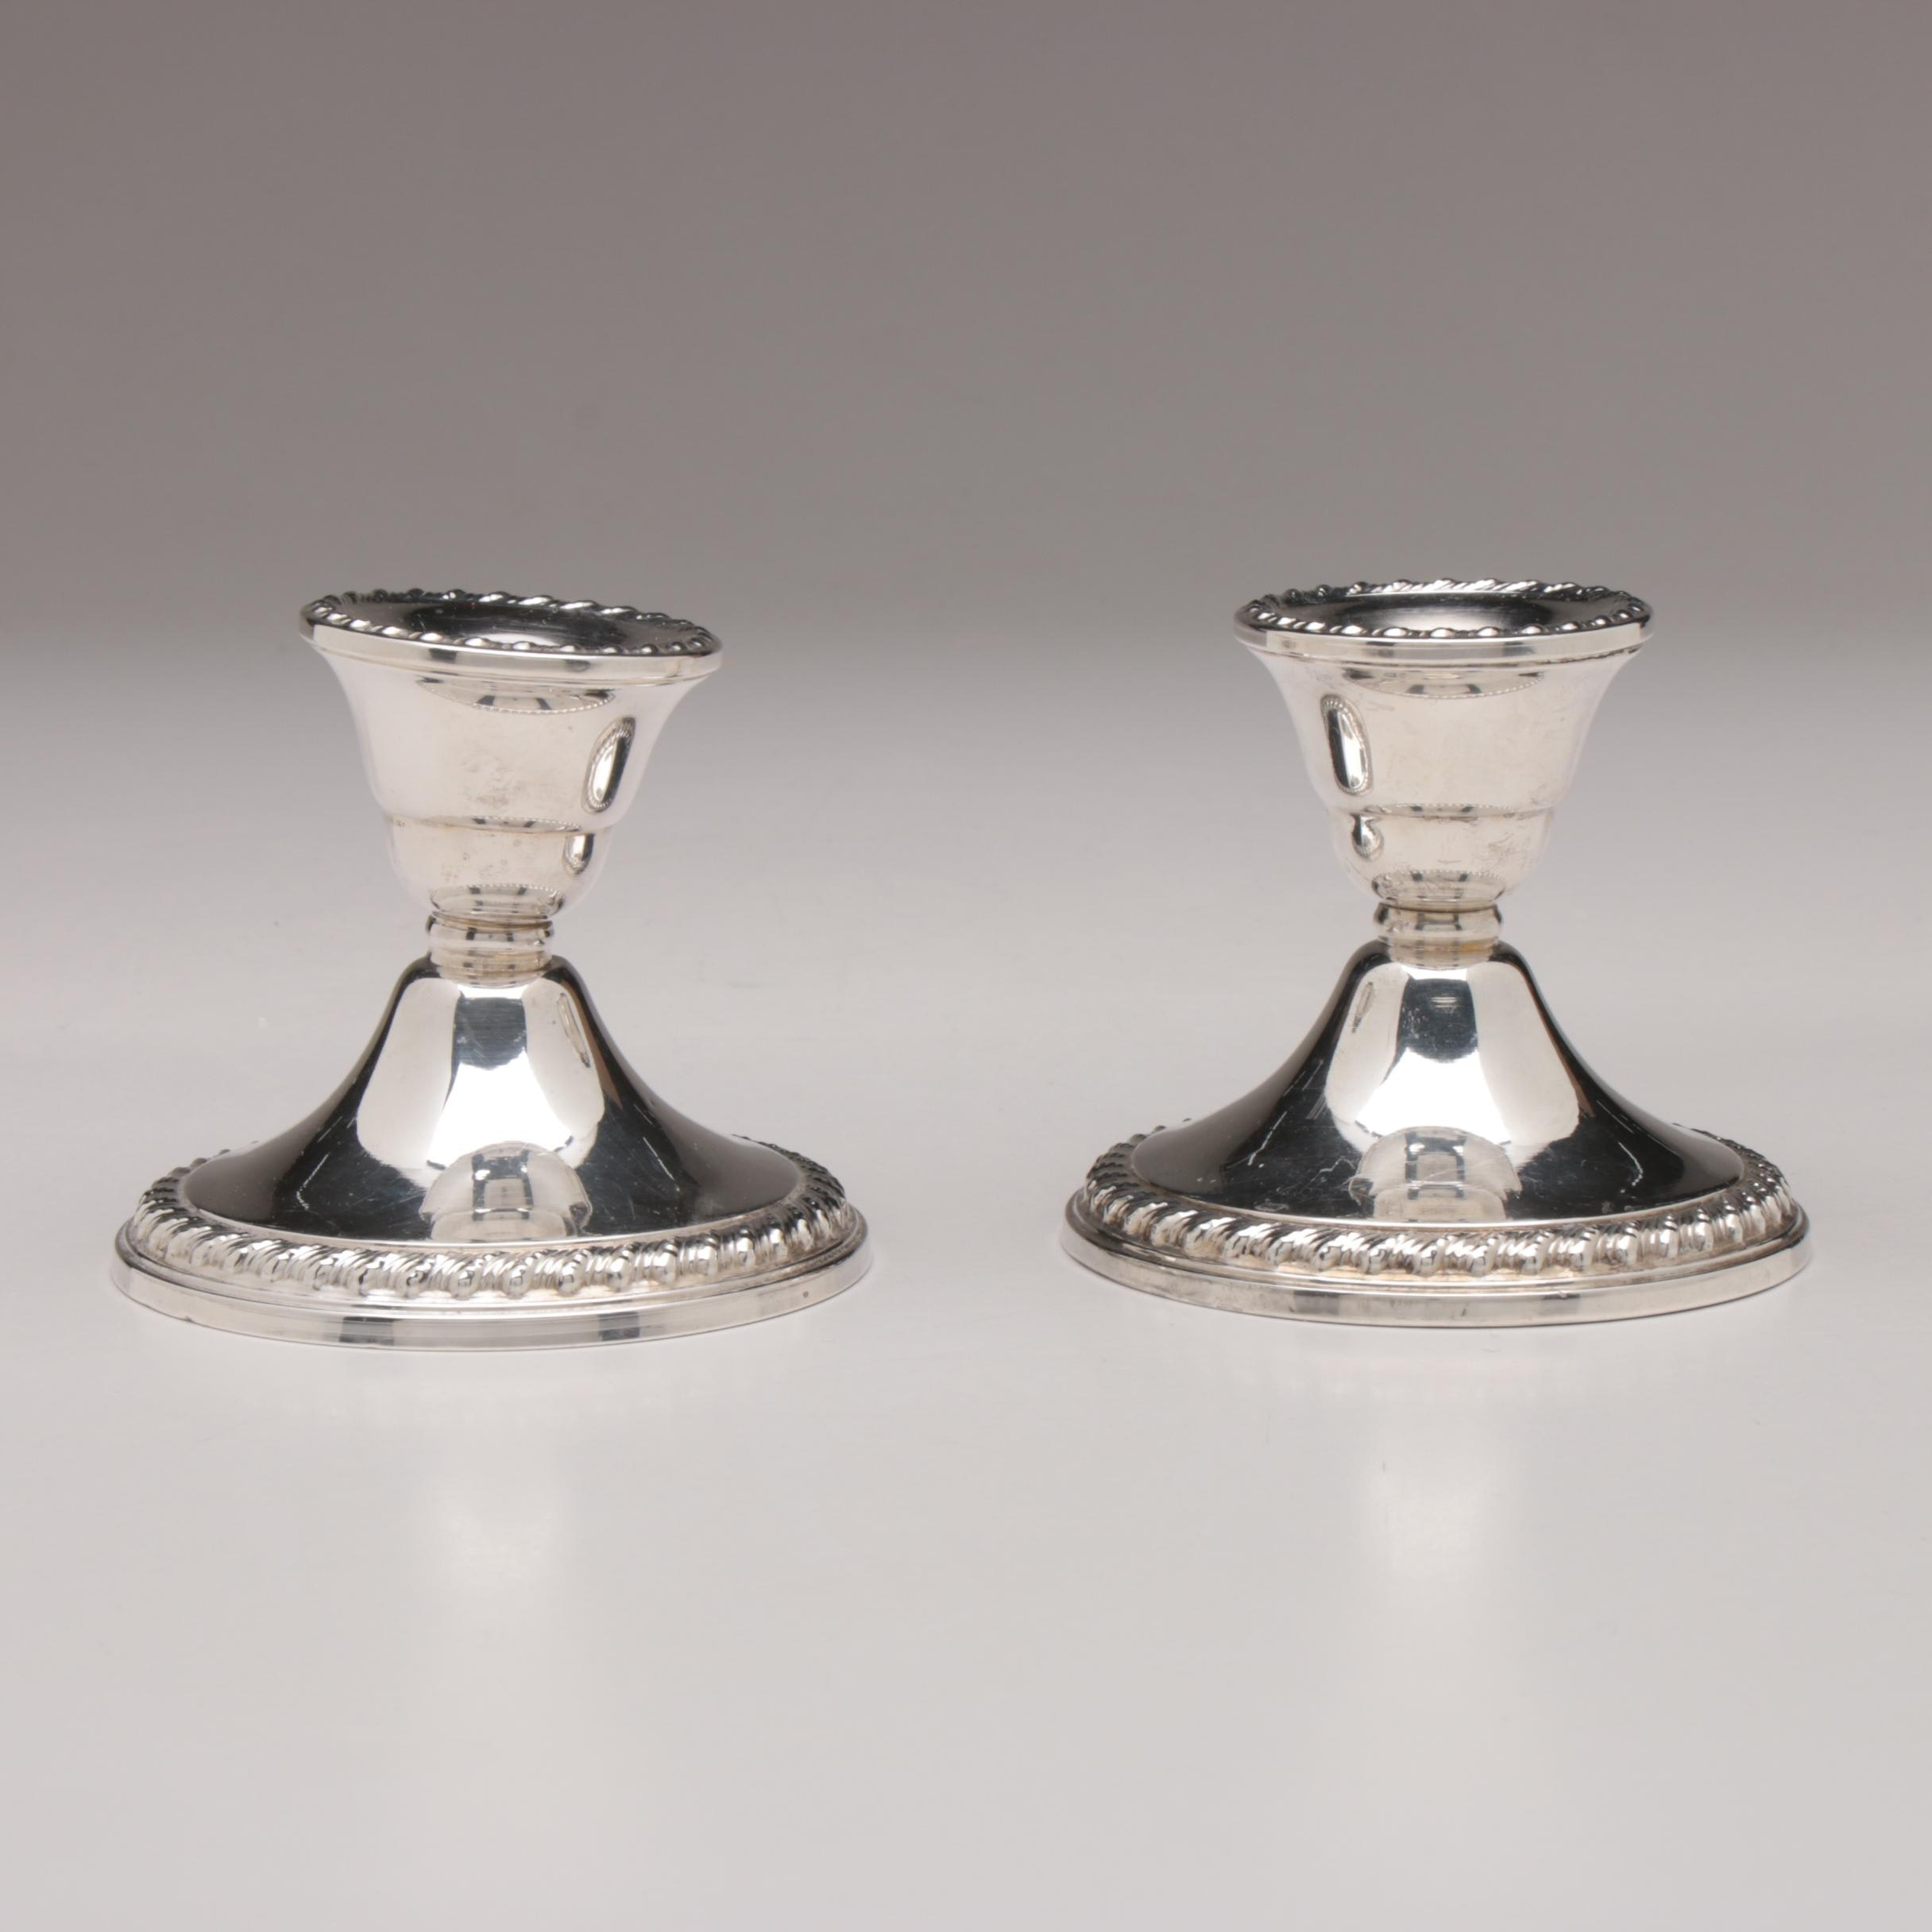 Wm Rogers Weighted Sterling Silver Candlesticks, Circa 1865 –1867